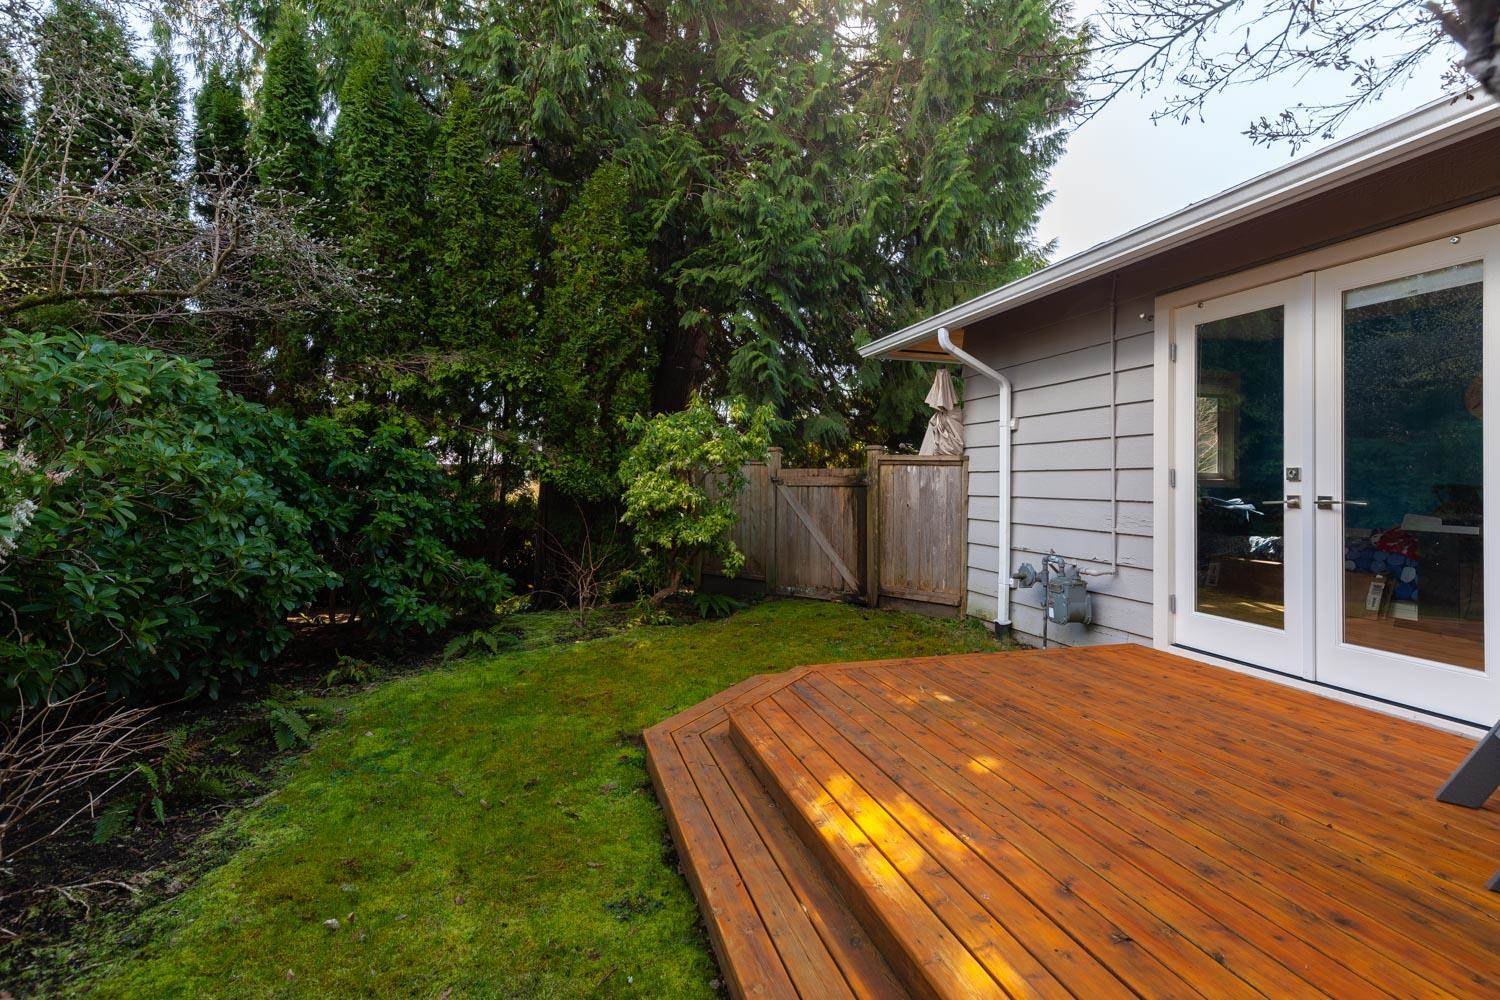 4145 BURKEHILL ROAD - Bayridge House/Single Family for sale, 4 Bedrooms (R2602910) - #32